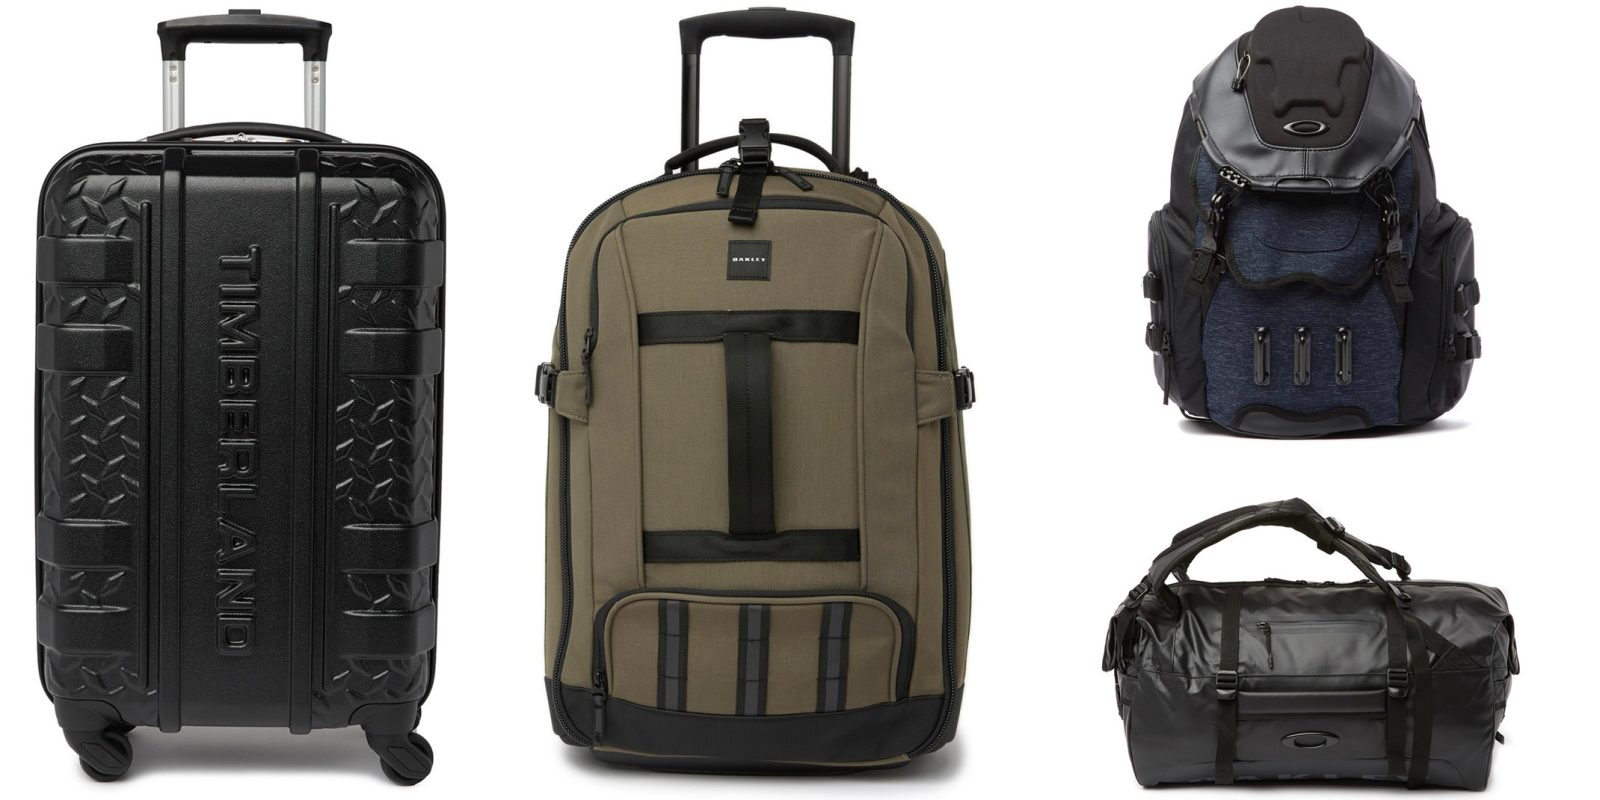 clearance prices united kingdom skate shoes Oakley luggage, backpacks & accessories from $15 during ...